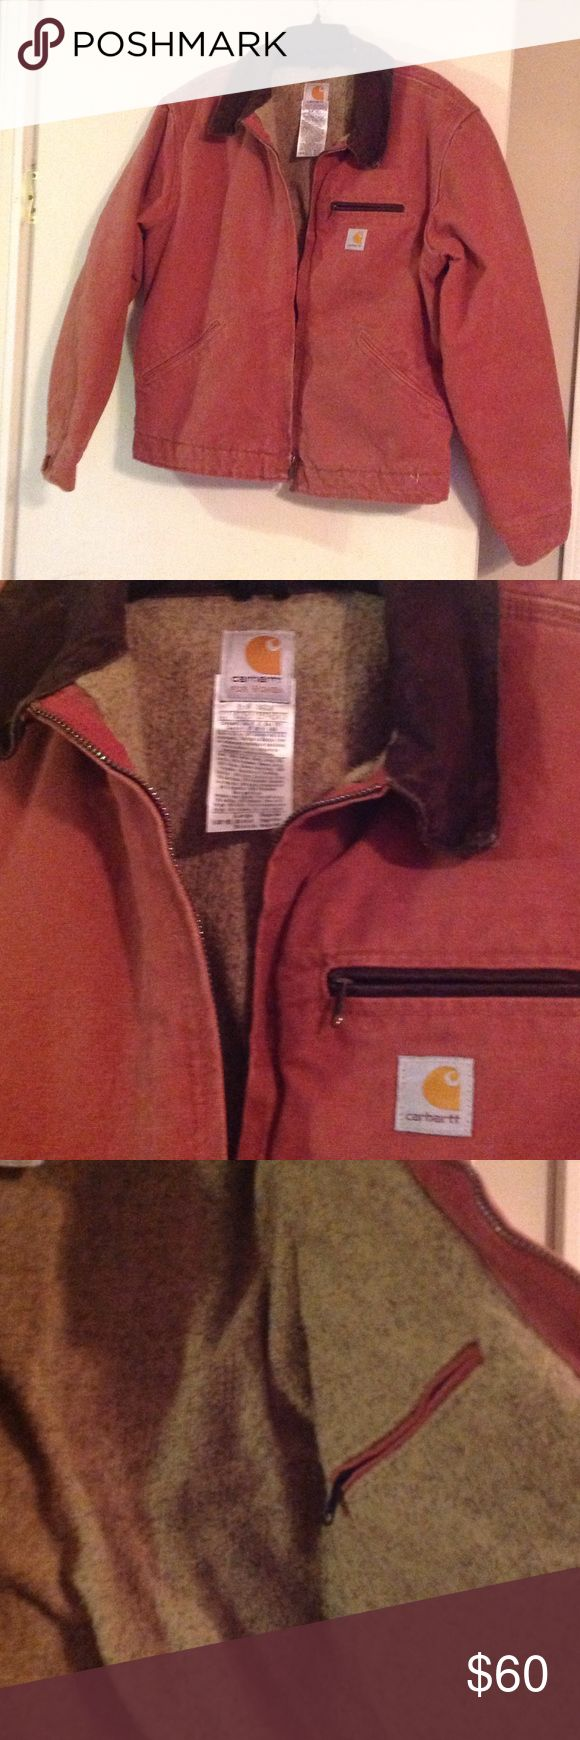 Ladies Carhartt coat size lg Great condition with no holes, tears, stains, etc, smoke free home, warm lining Carhartt Jackets & Coats Jean Jackets